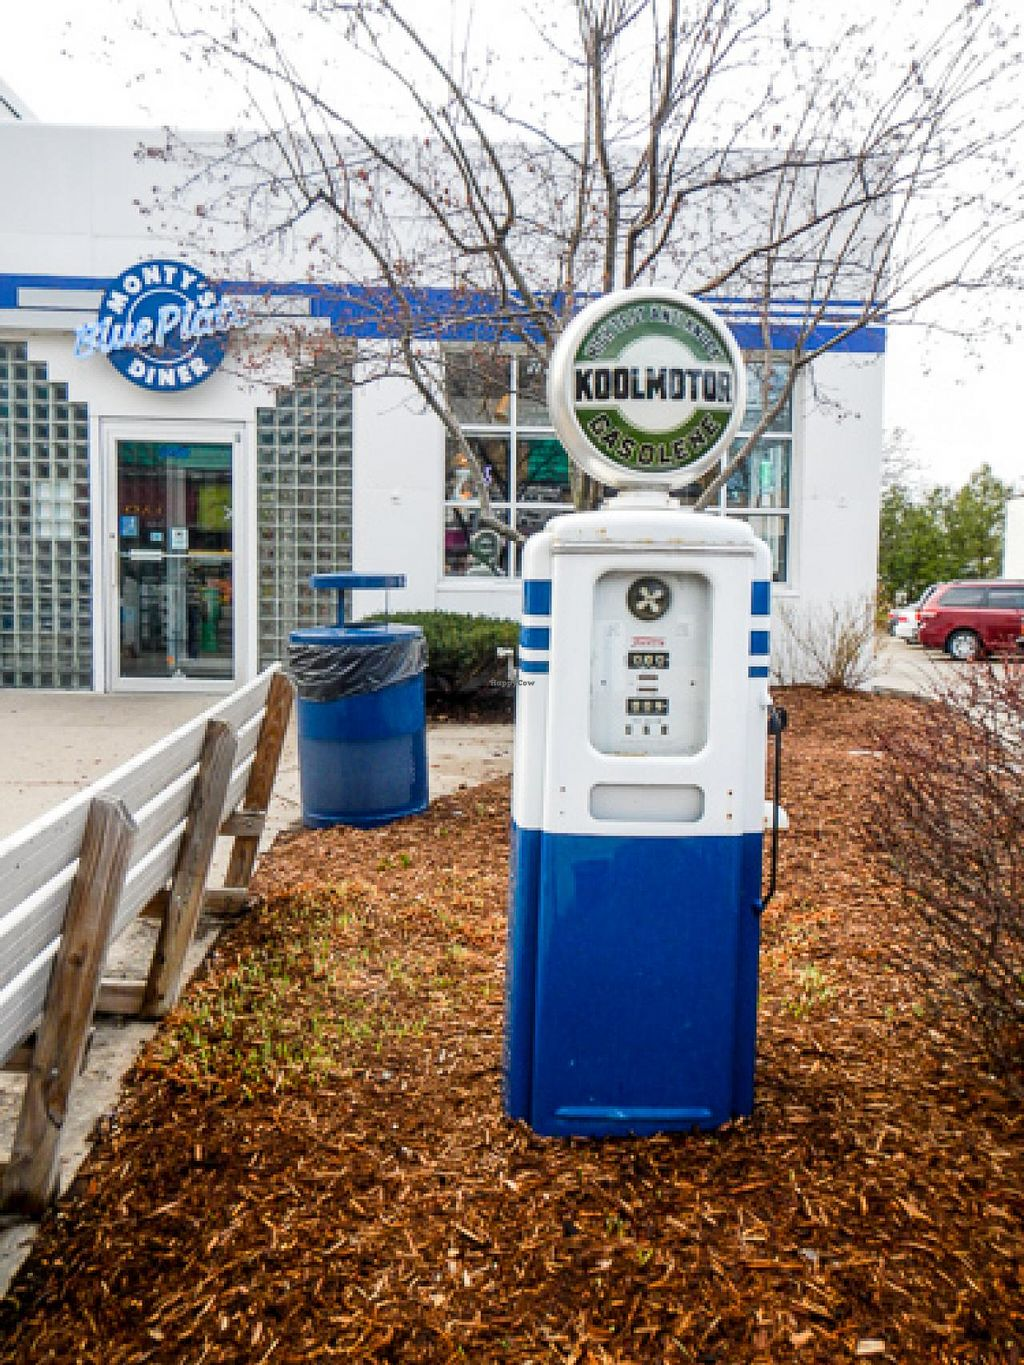 """Photo of Monty's Blue Plate Diner  by <a href=""""/members/profile/EverydayTastiness"""">EverydayTastiness</a> <br/>outside <br/> April 24, 2015  - <a href='/contact/abuse/image/5594/100137'>Report</a>"""